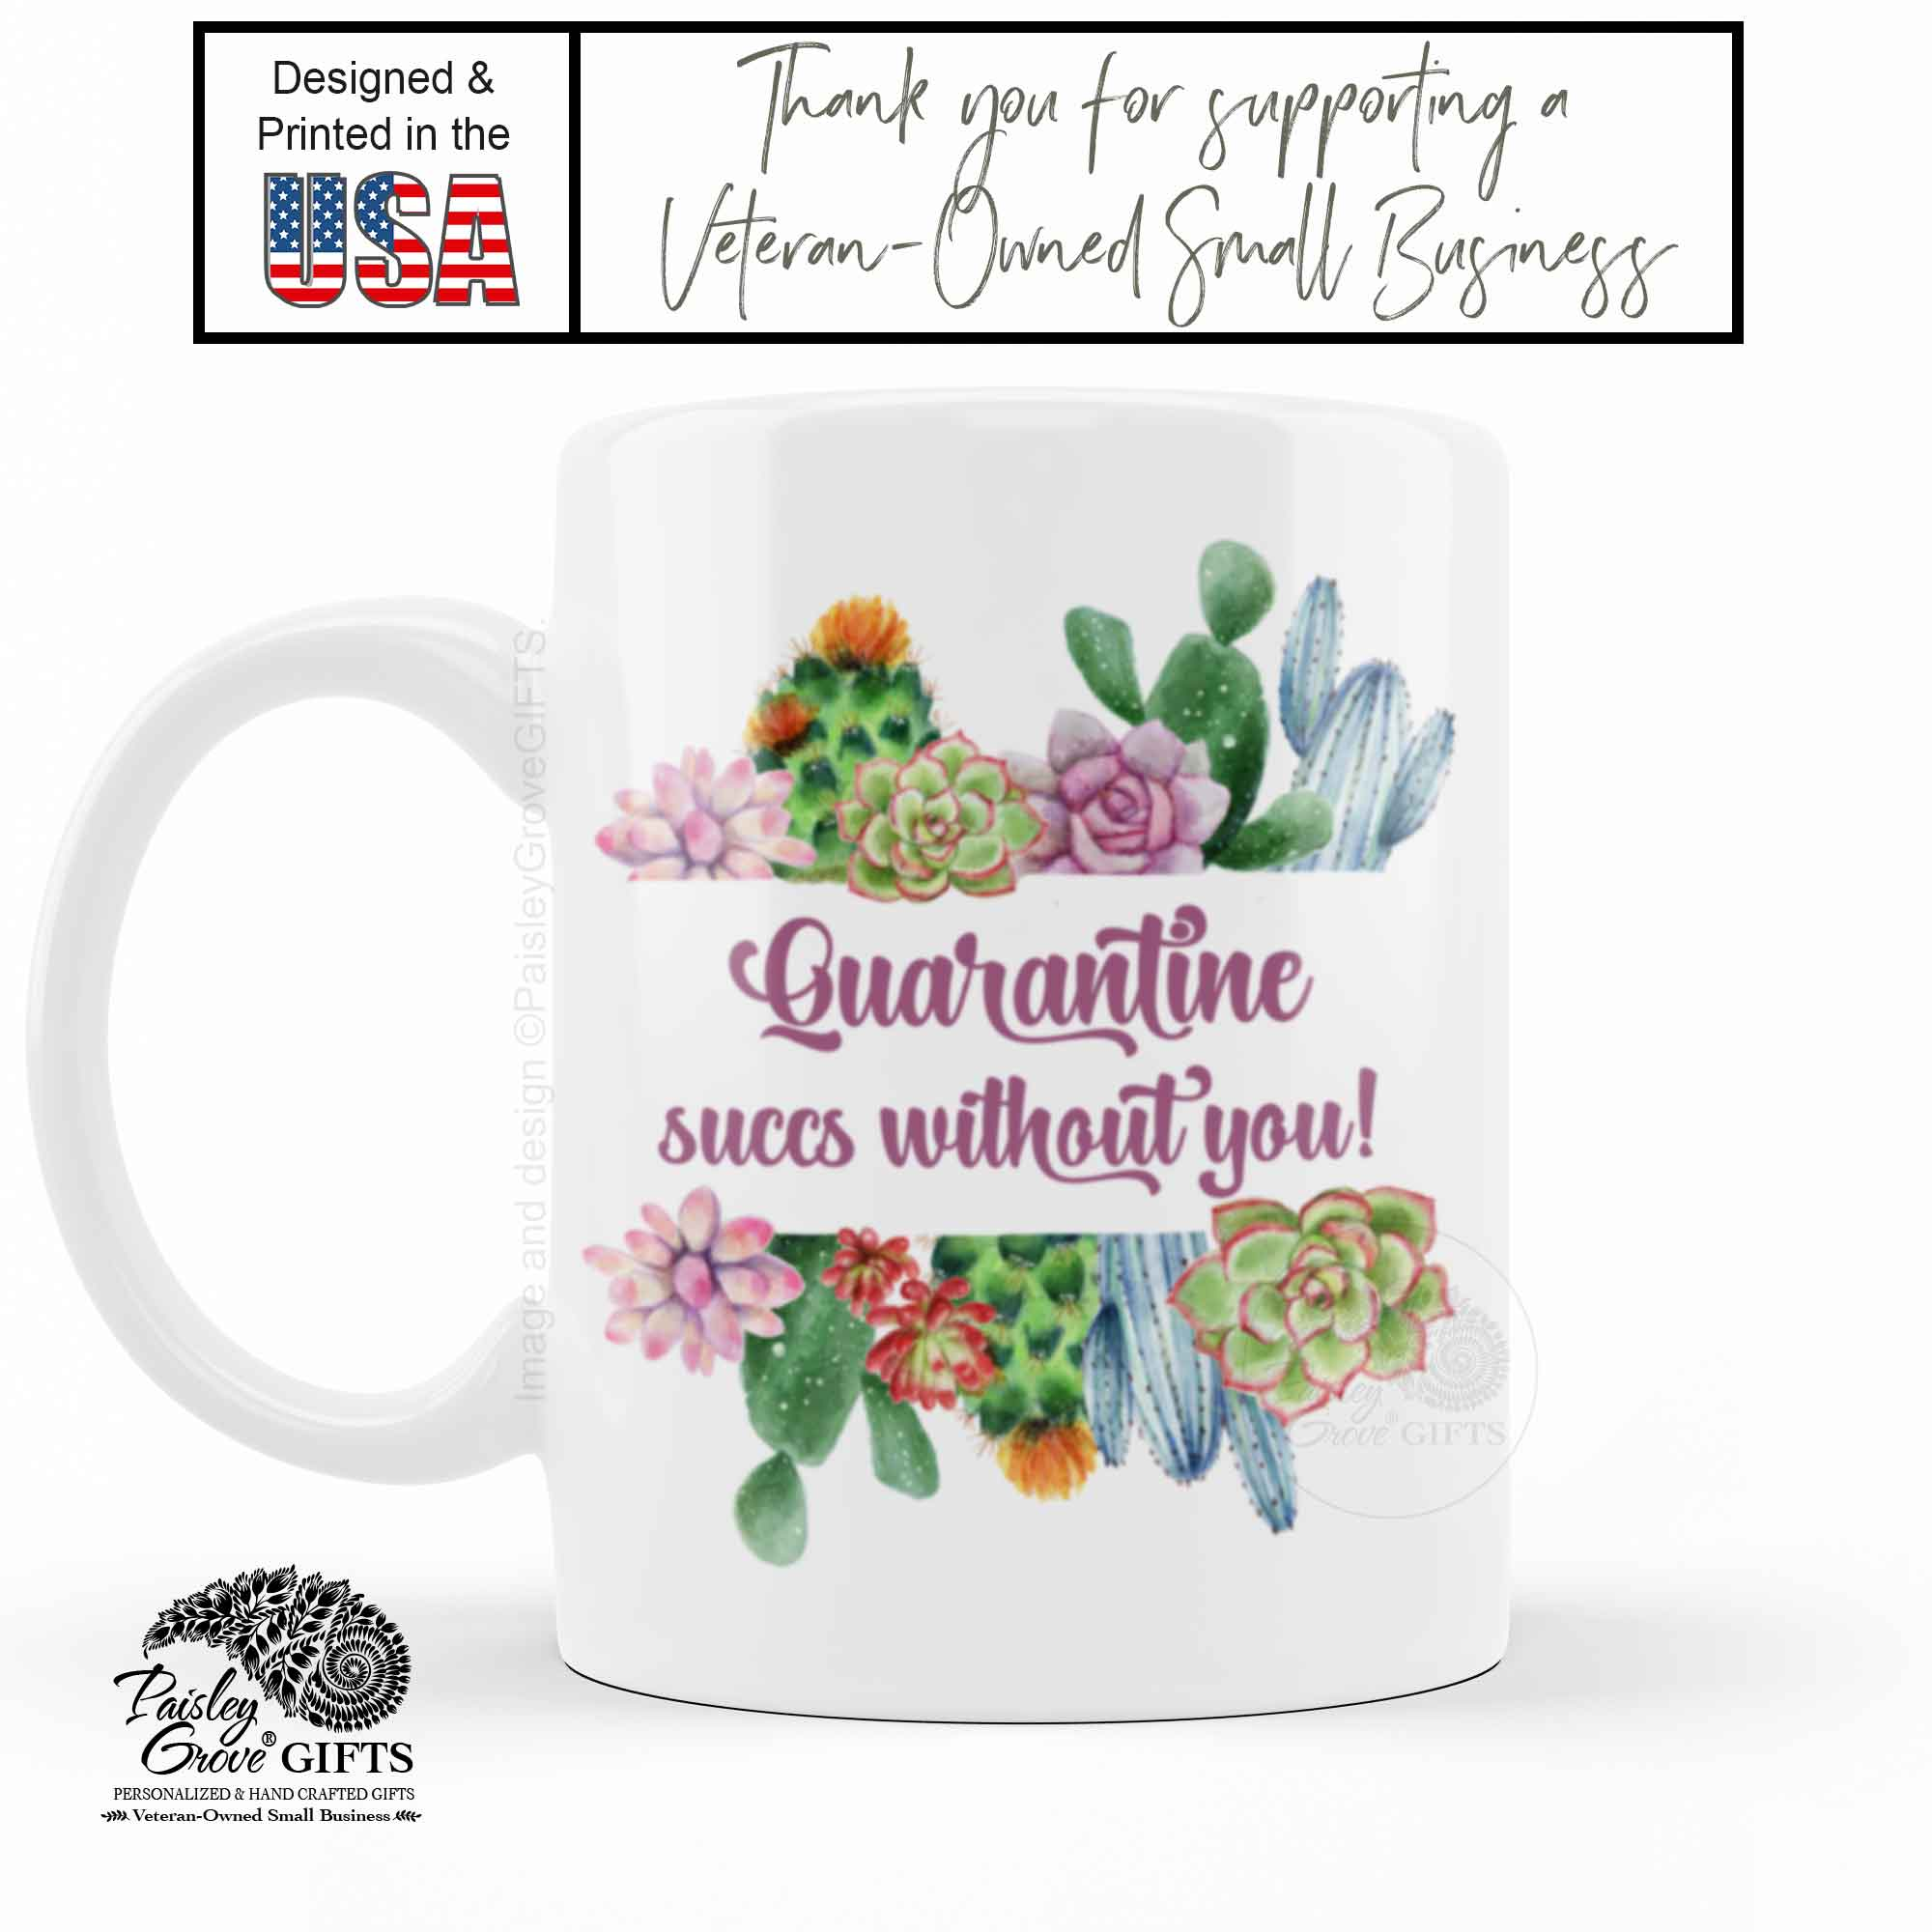 Quarantine Succs Without You, Succulent Cactus Mug | PaisleyGroveGIFTS P010a